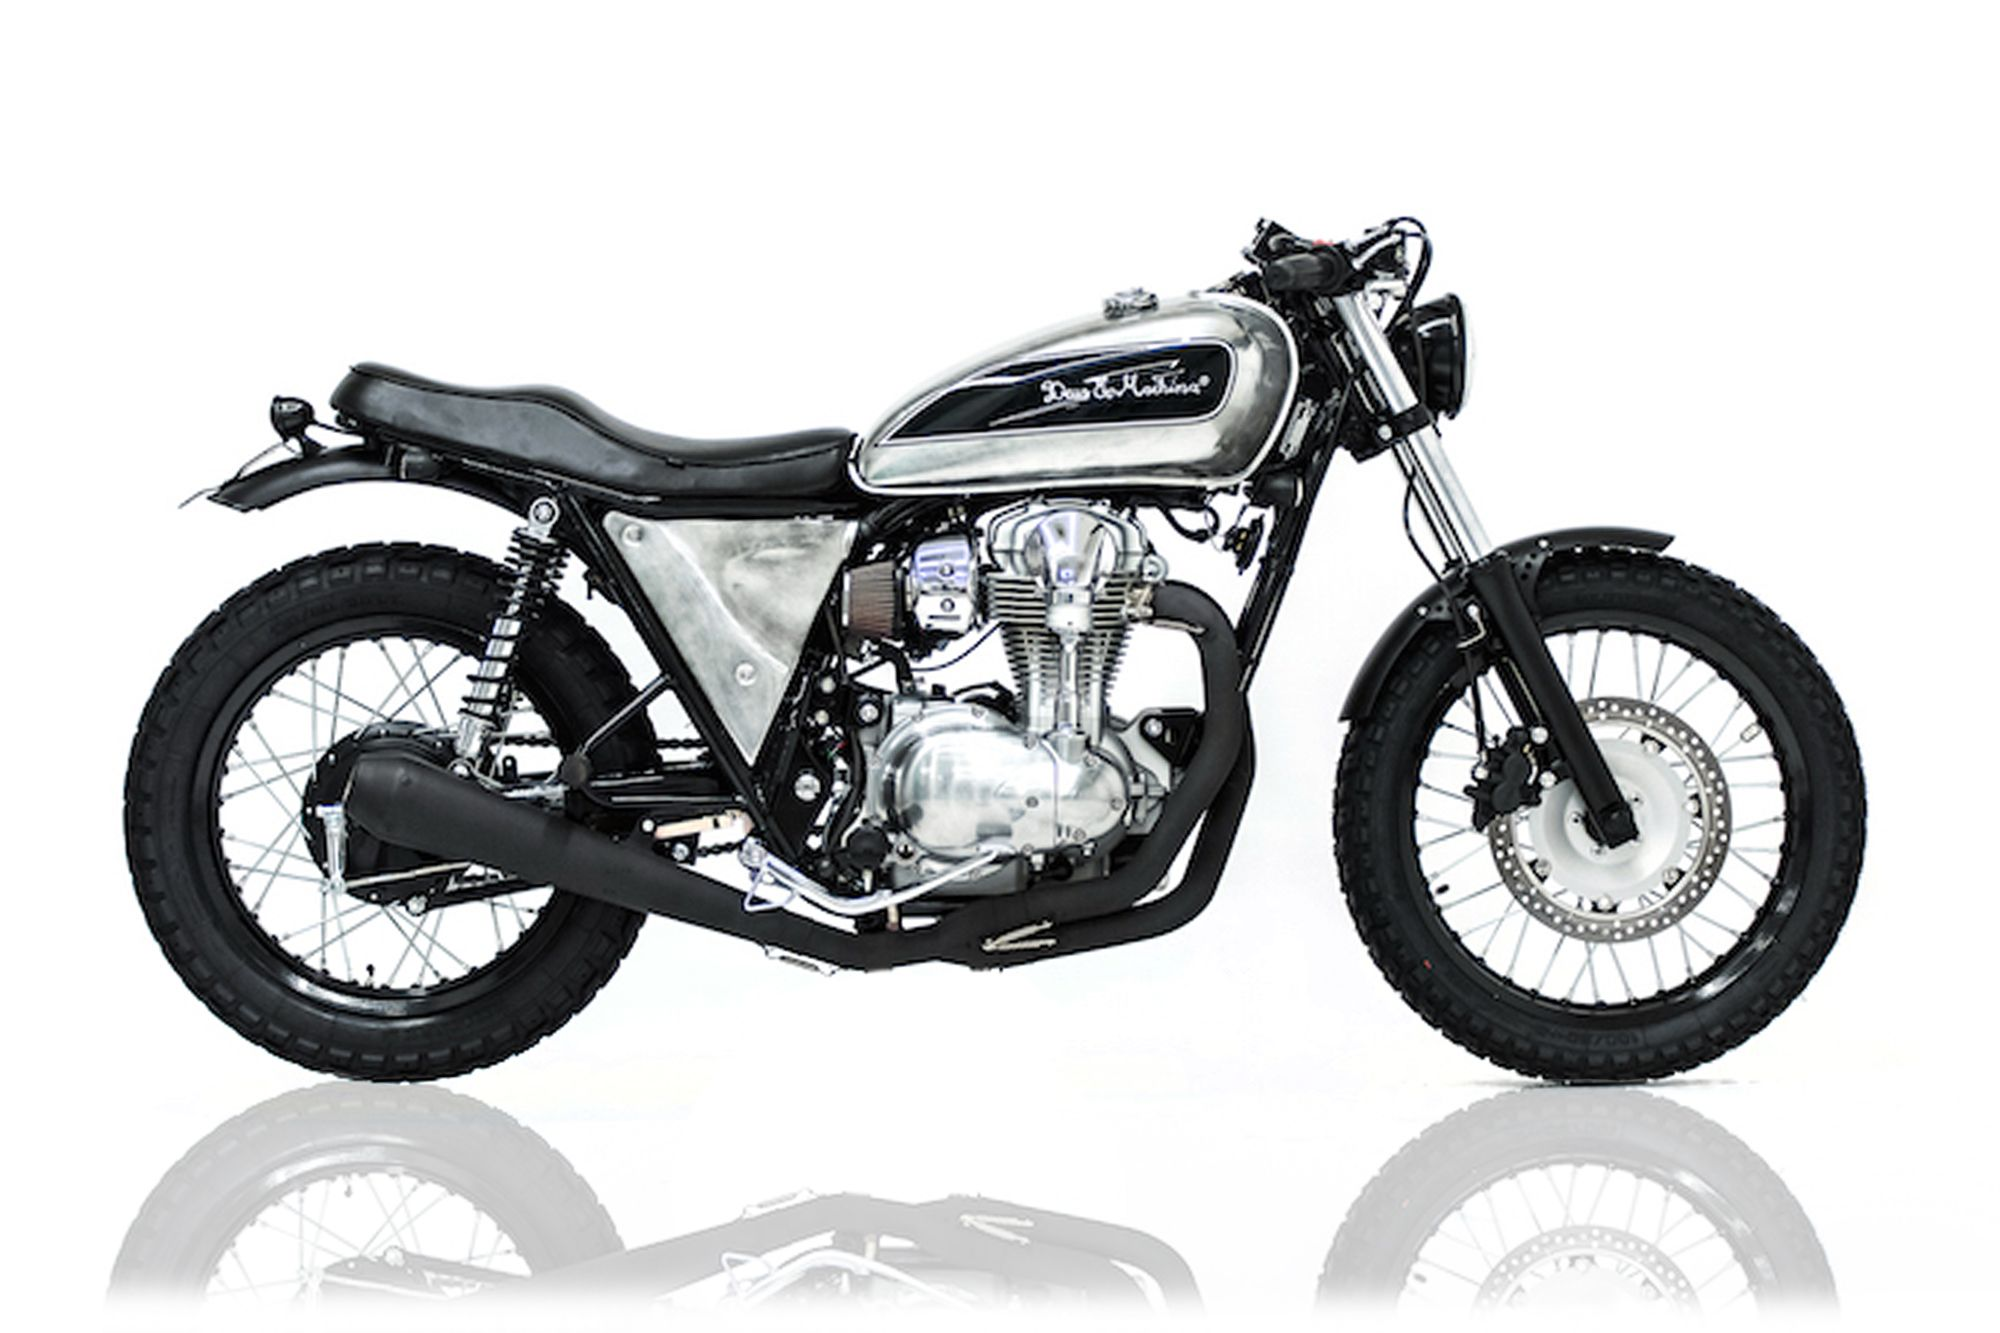 The Saint, one of our biggest love, the Kawasaki W800 - a more obtained, beloved build and tailor made bike is hard to find.